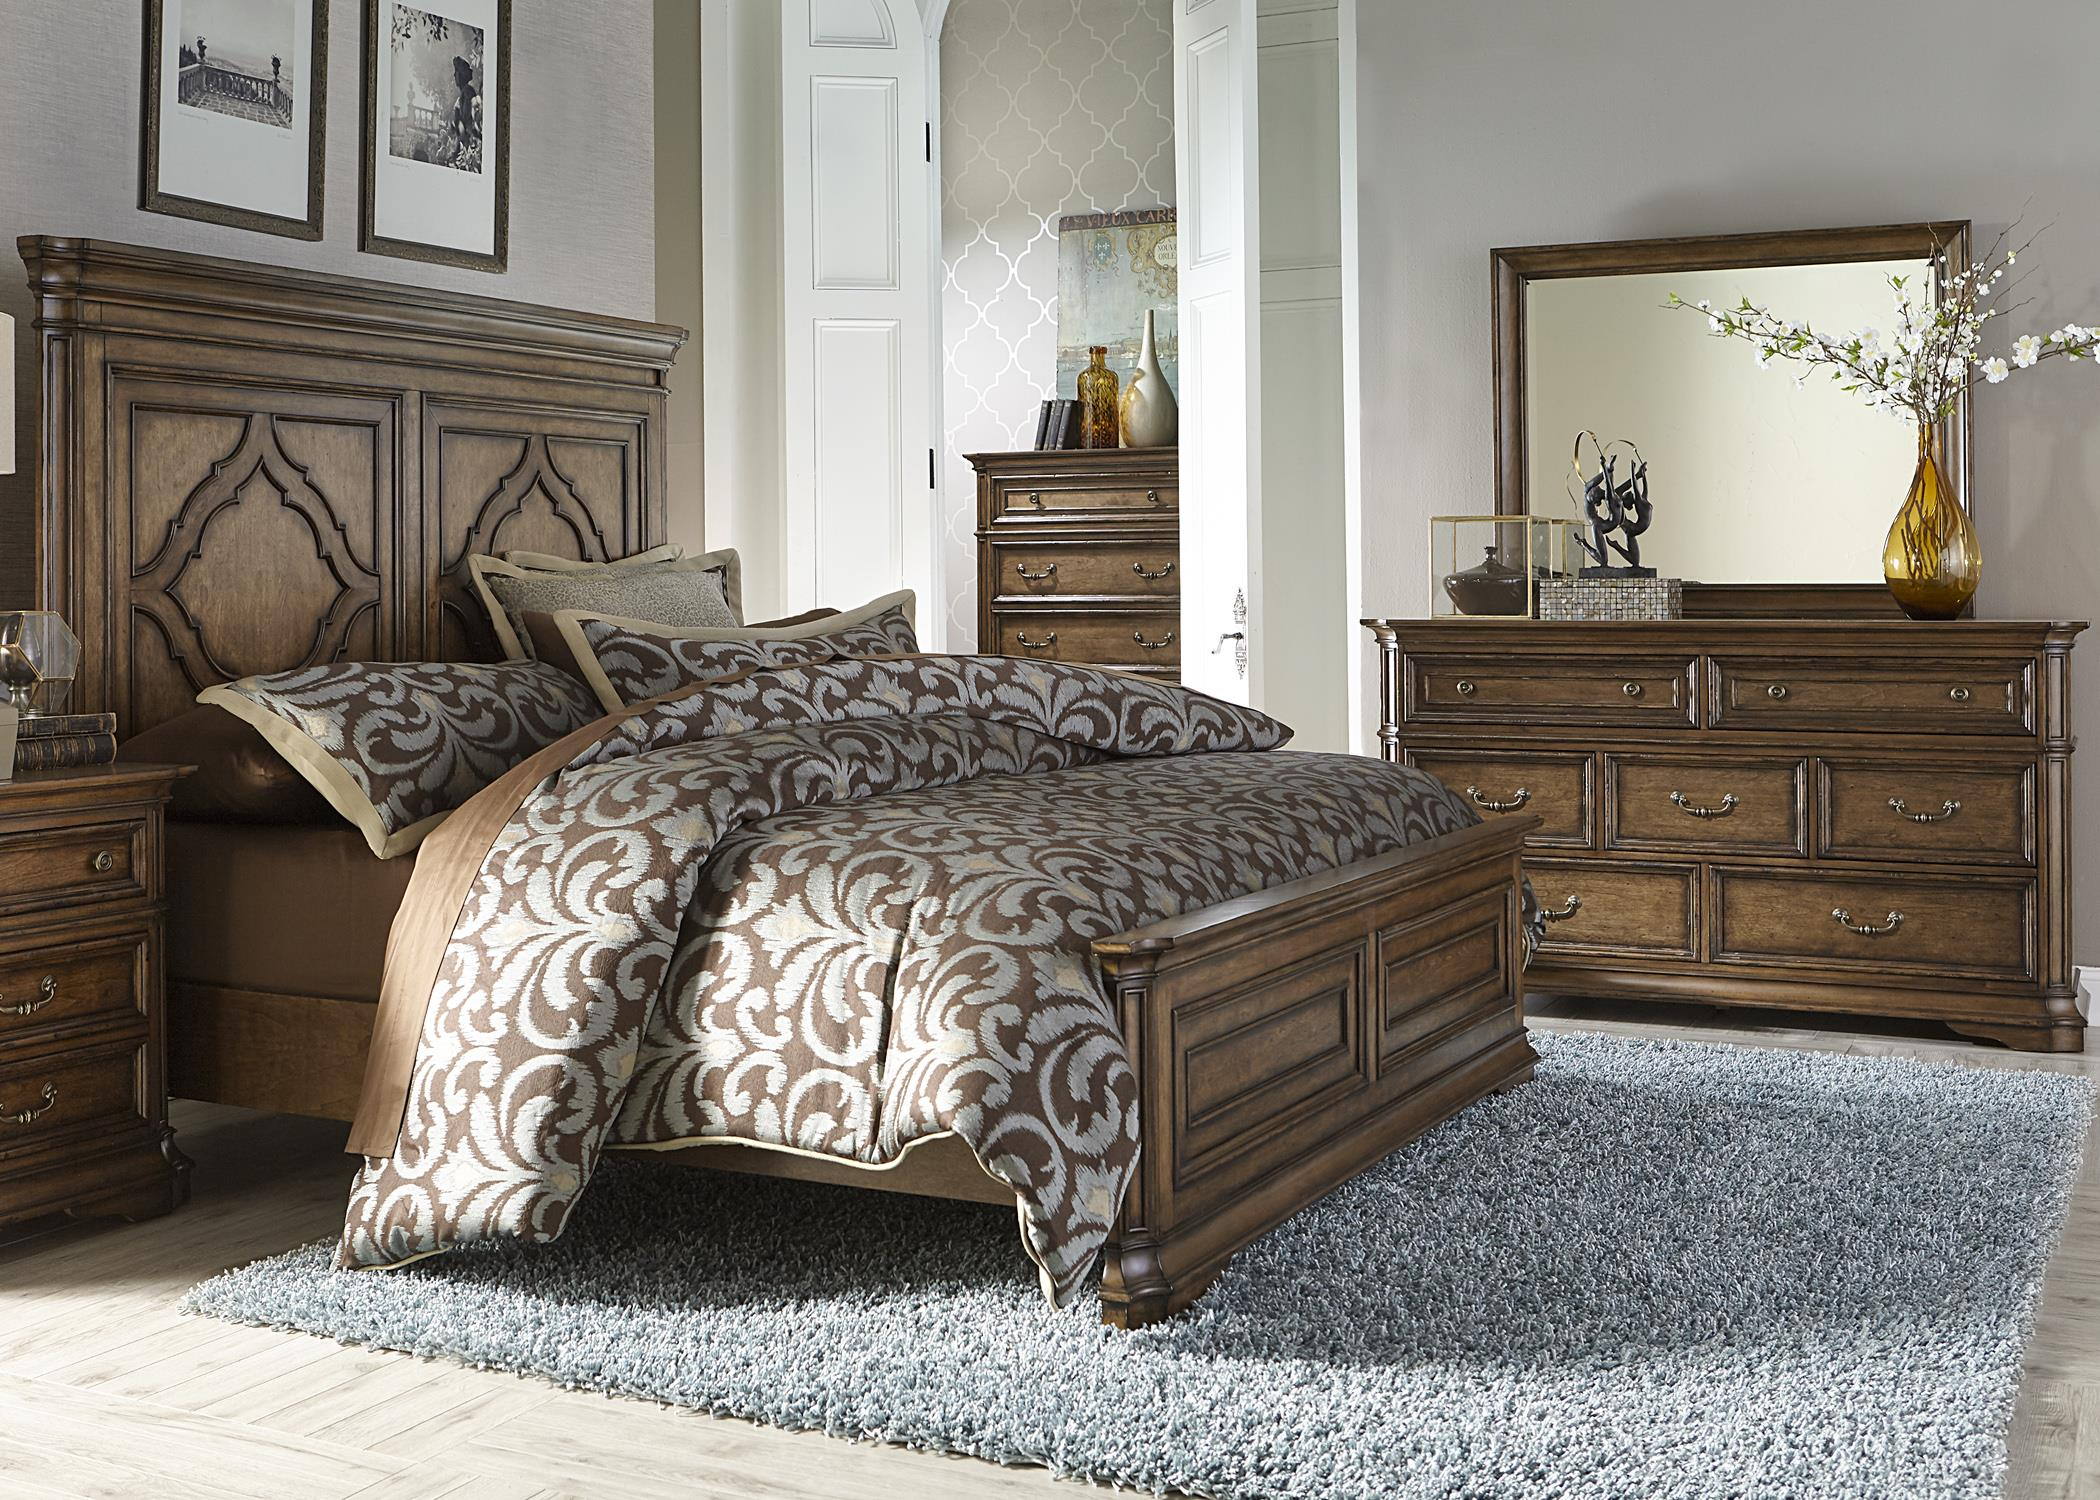 Liberty Furniture Amelia King Bedroom Group - Item Number: 487-BR-KPBDMC